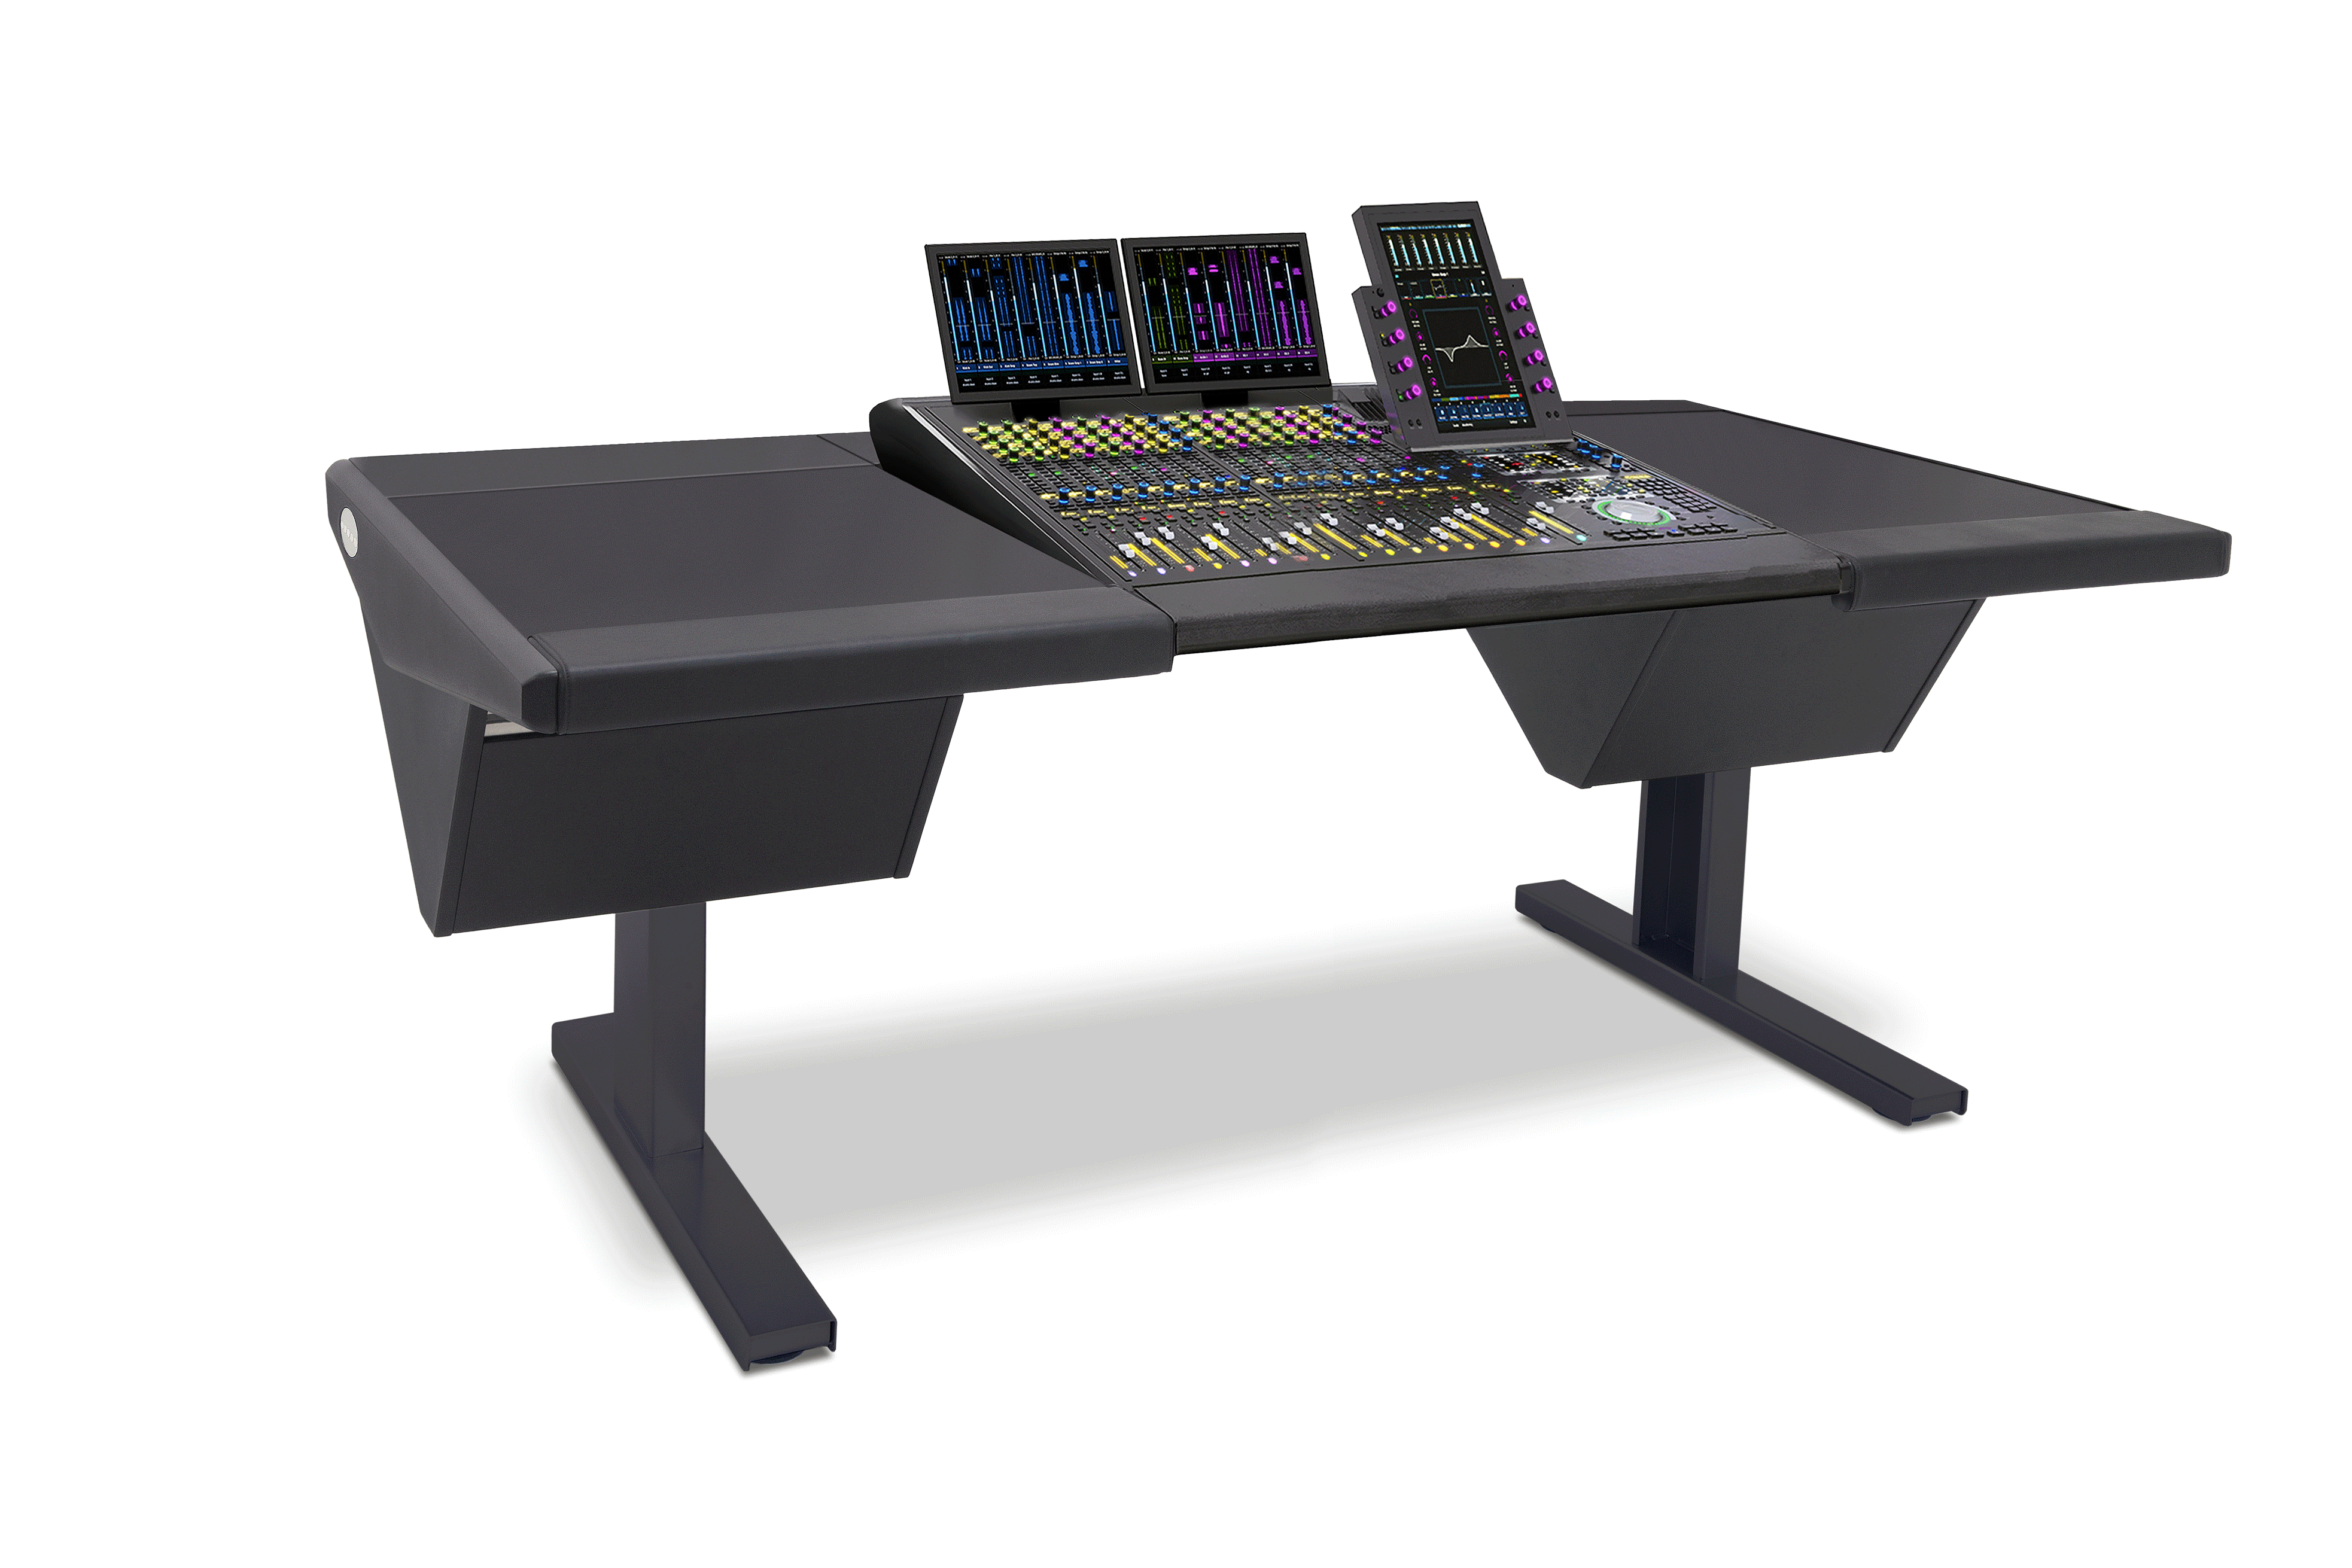 16 Fader System with Desk (L) and Desk (R)